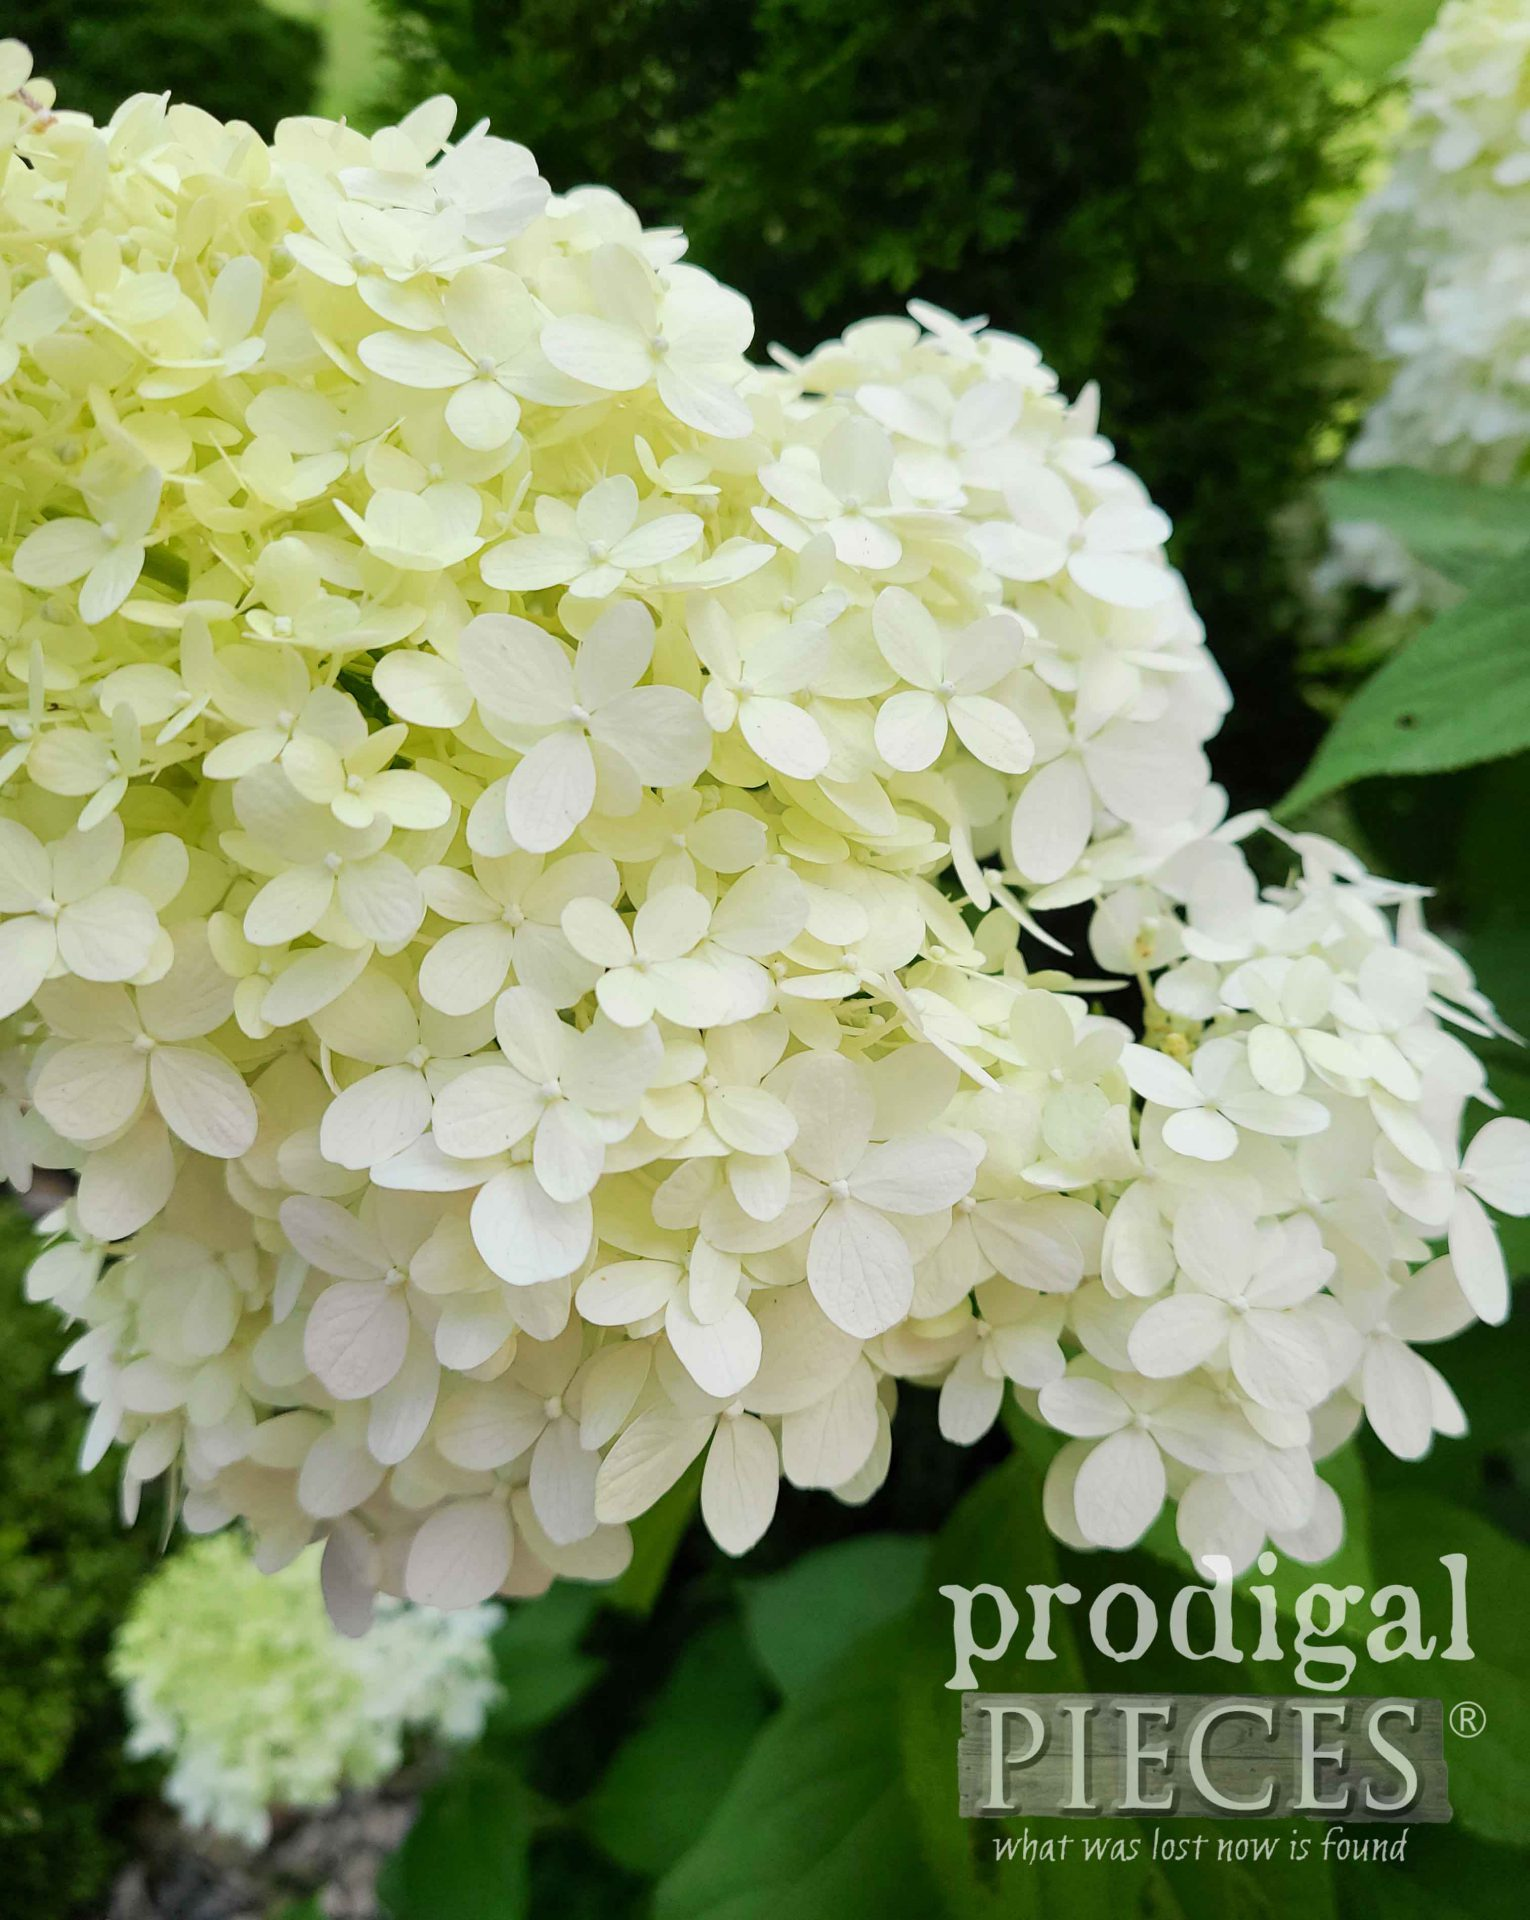 Snowy White Limelight Flowers | by Prodigal Pieces | prodigalpieces.com #prodigalpieces